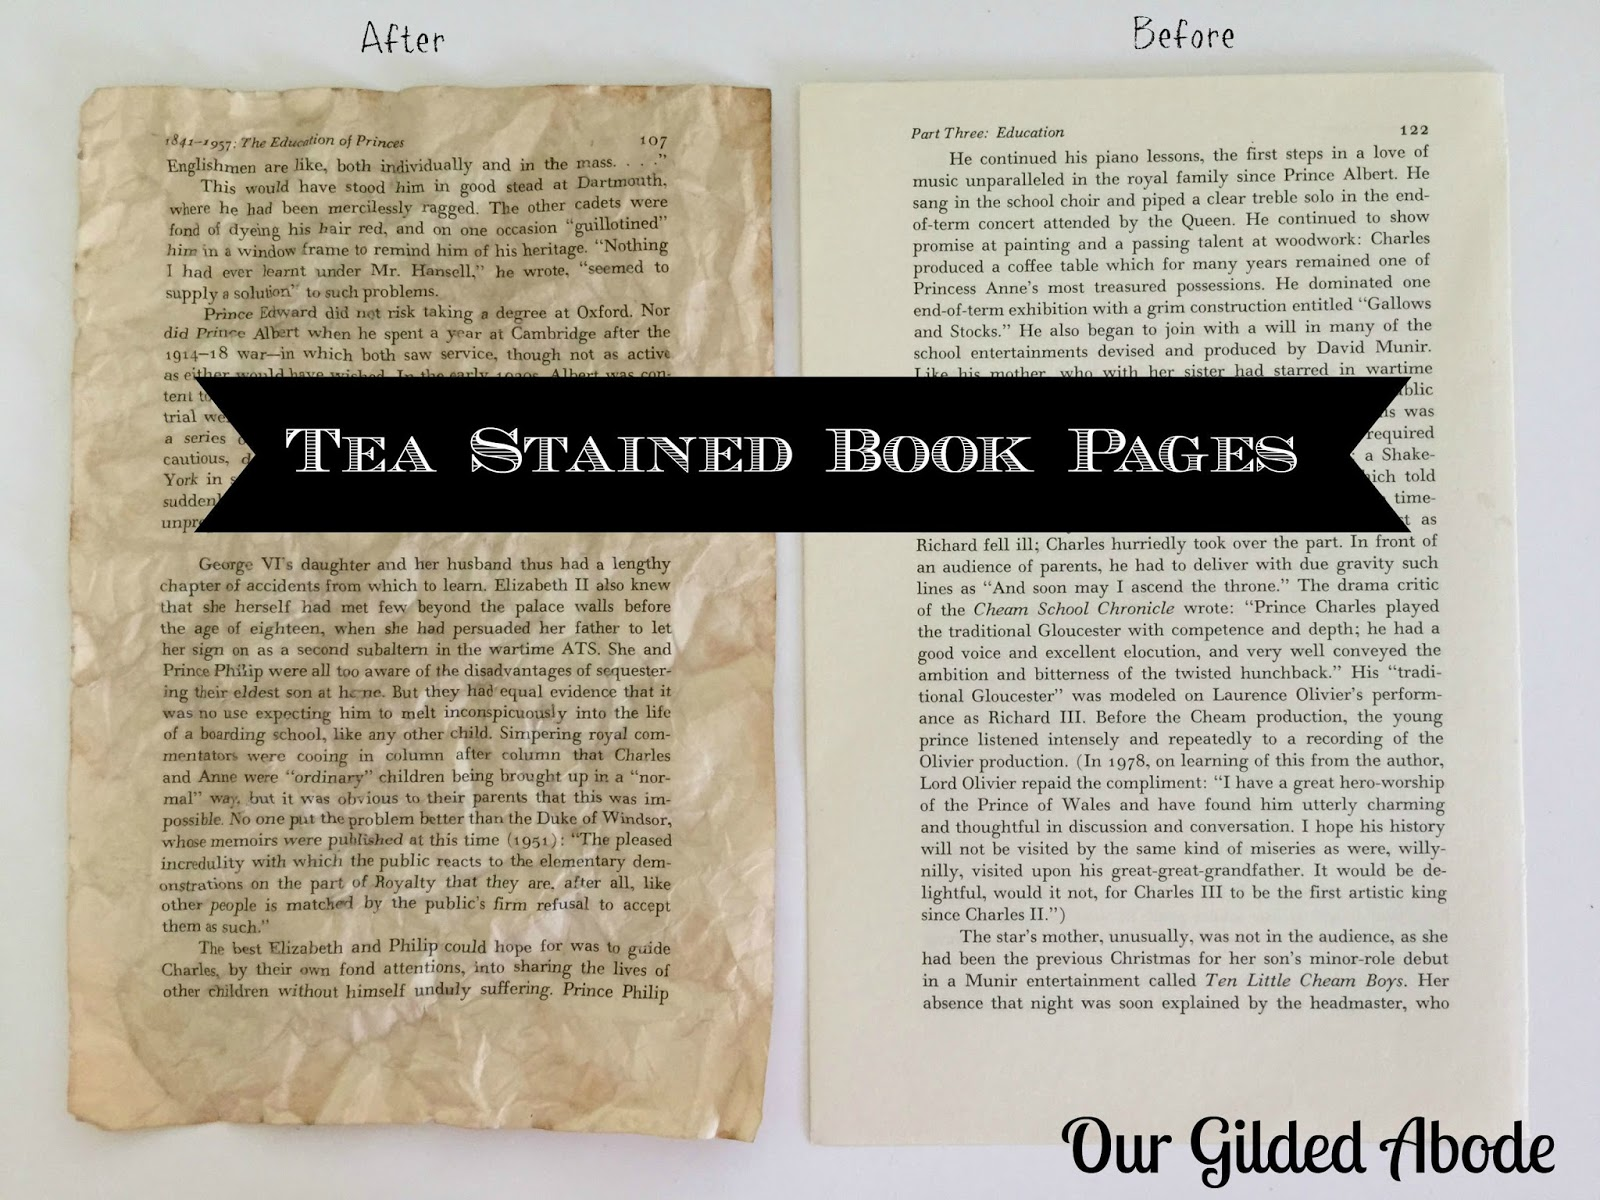 {TUTORIAL} How To Make Book Pages Look Old